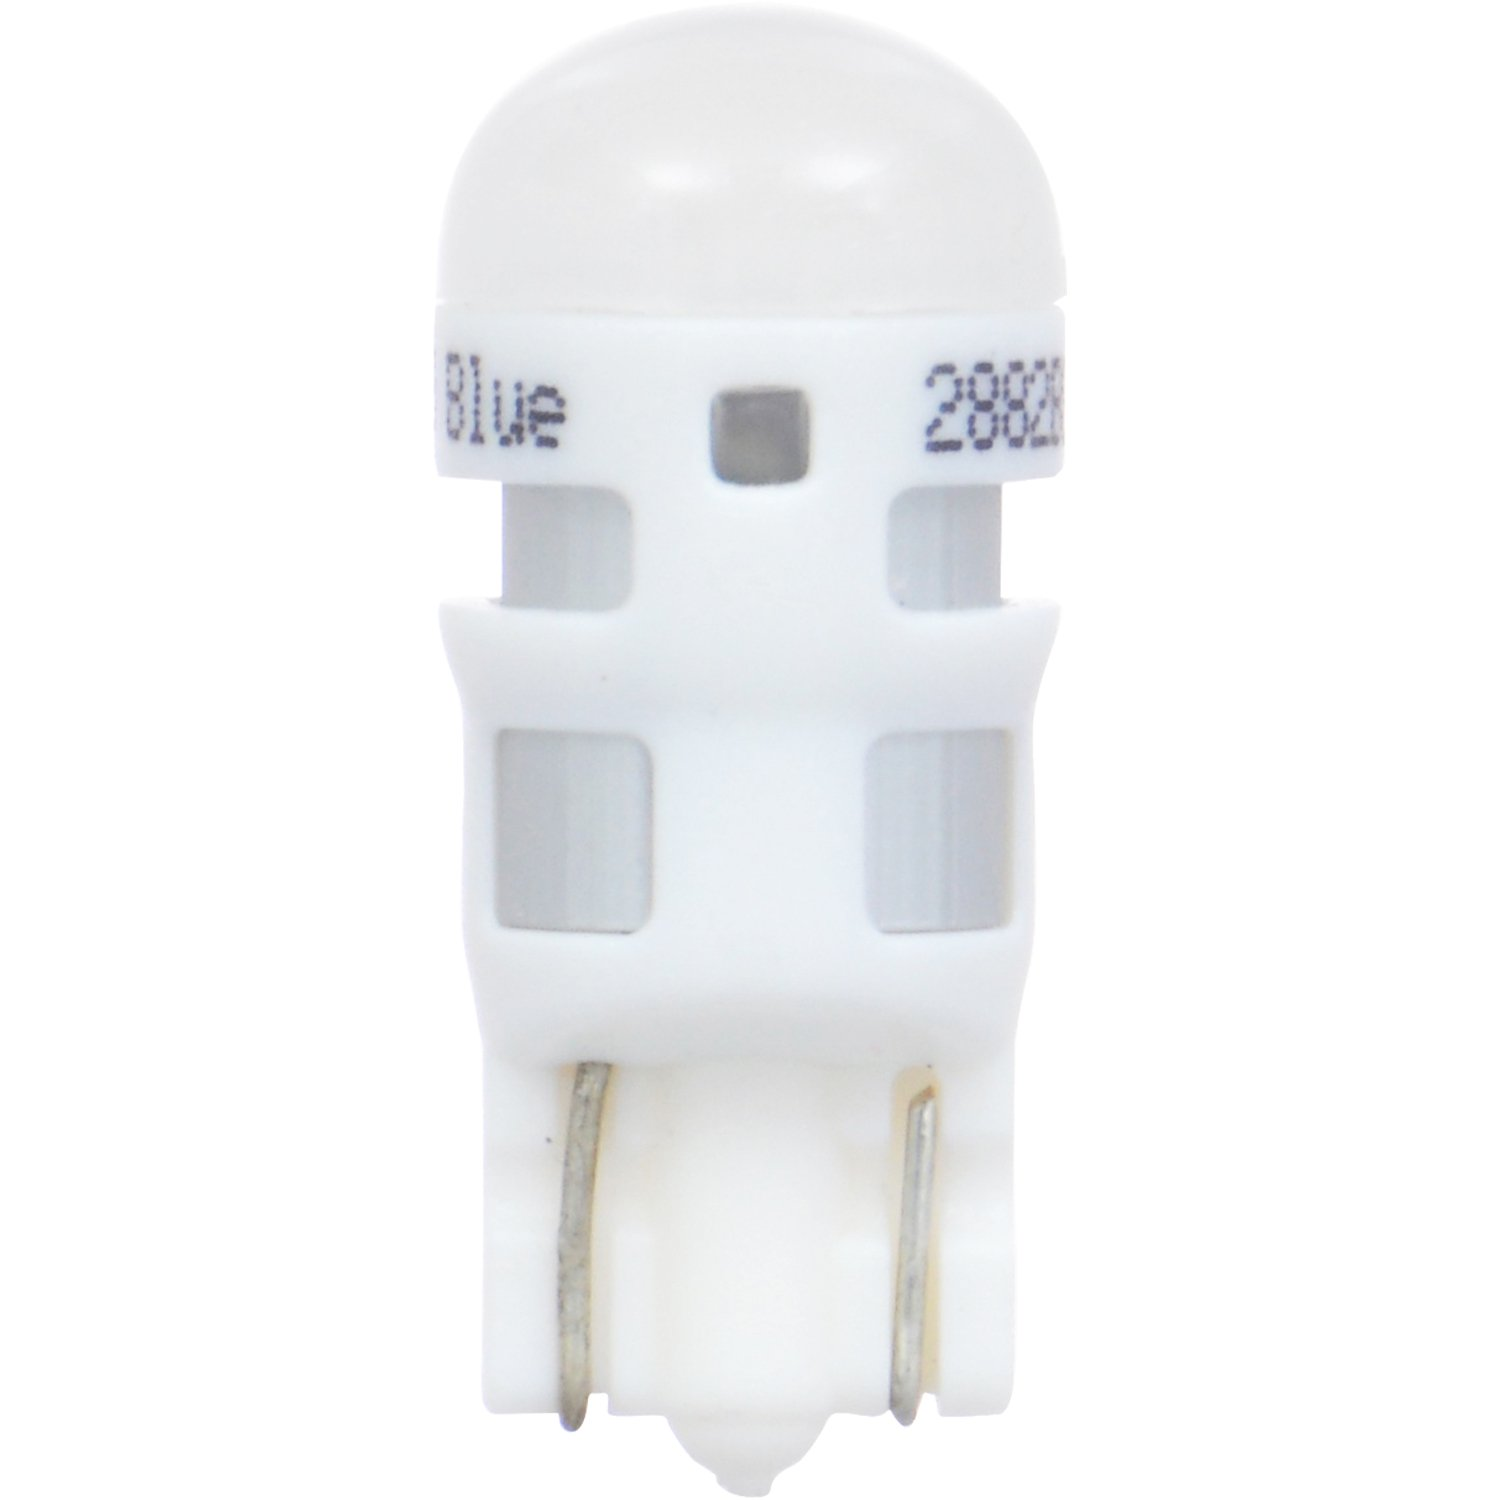 Ideal fo Interior Lighting Map SYLVANIA Bright LED Bulb Trunk 194 T10 W5W ZEVO LED White Bulb Dome Contains 1 Bulb Cargo and License Plate